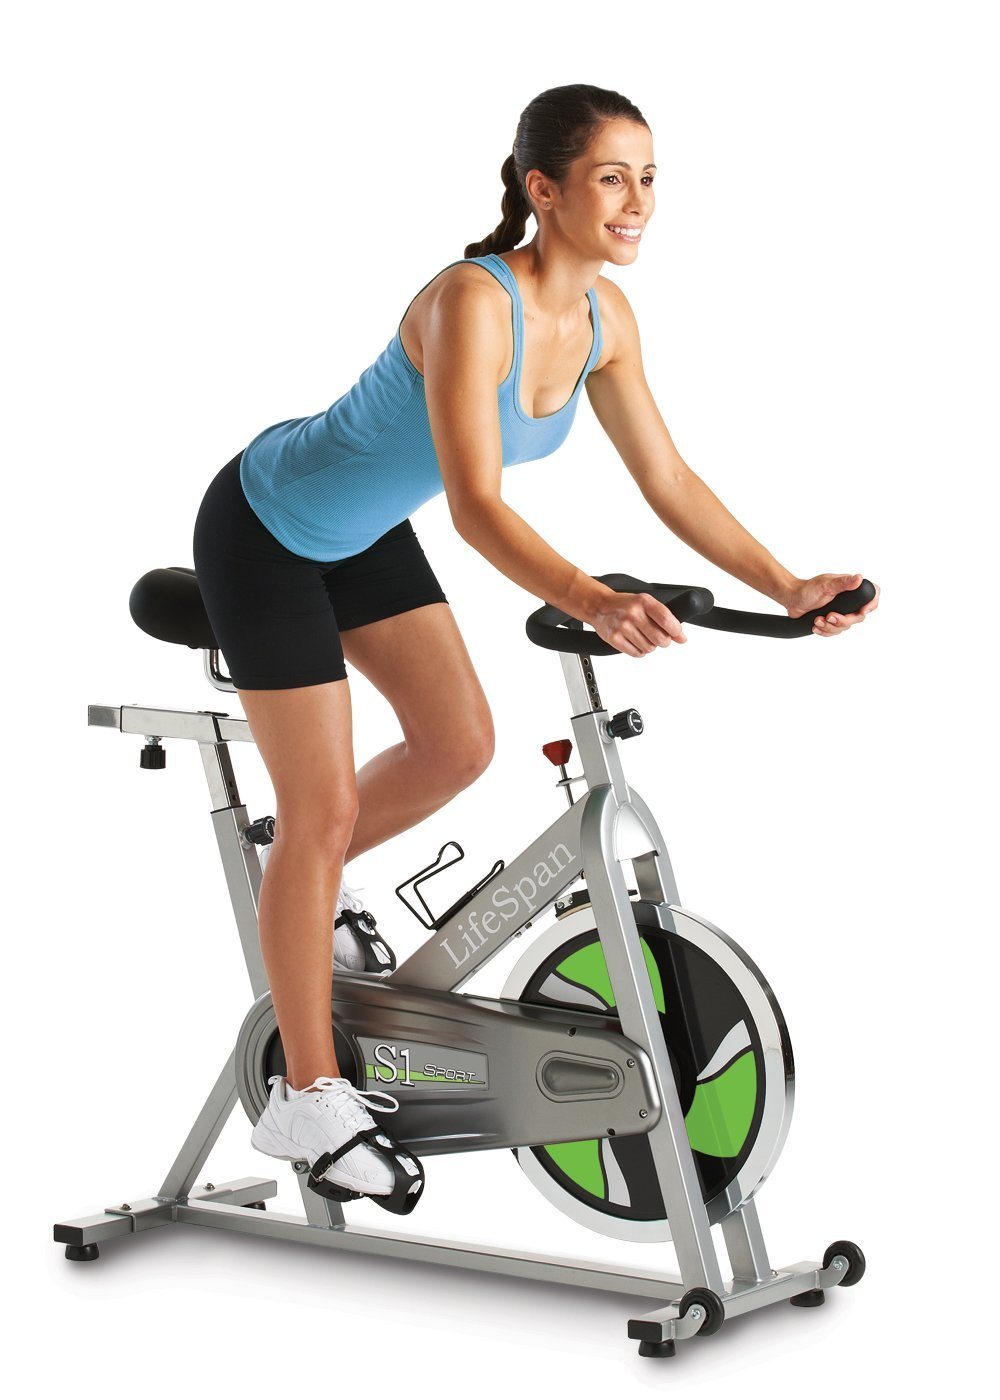 LifeSpan Fitness S1 Indoor Cycling Bike Review